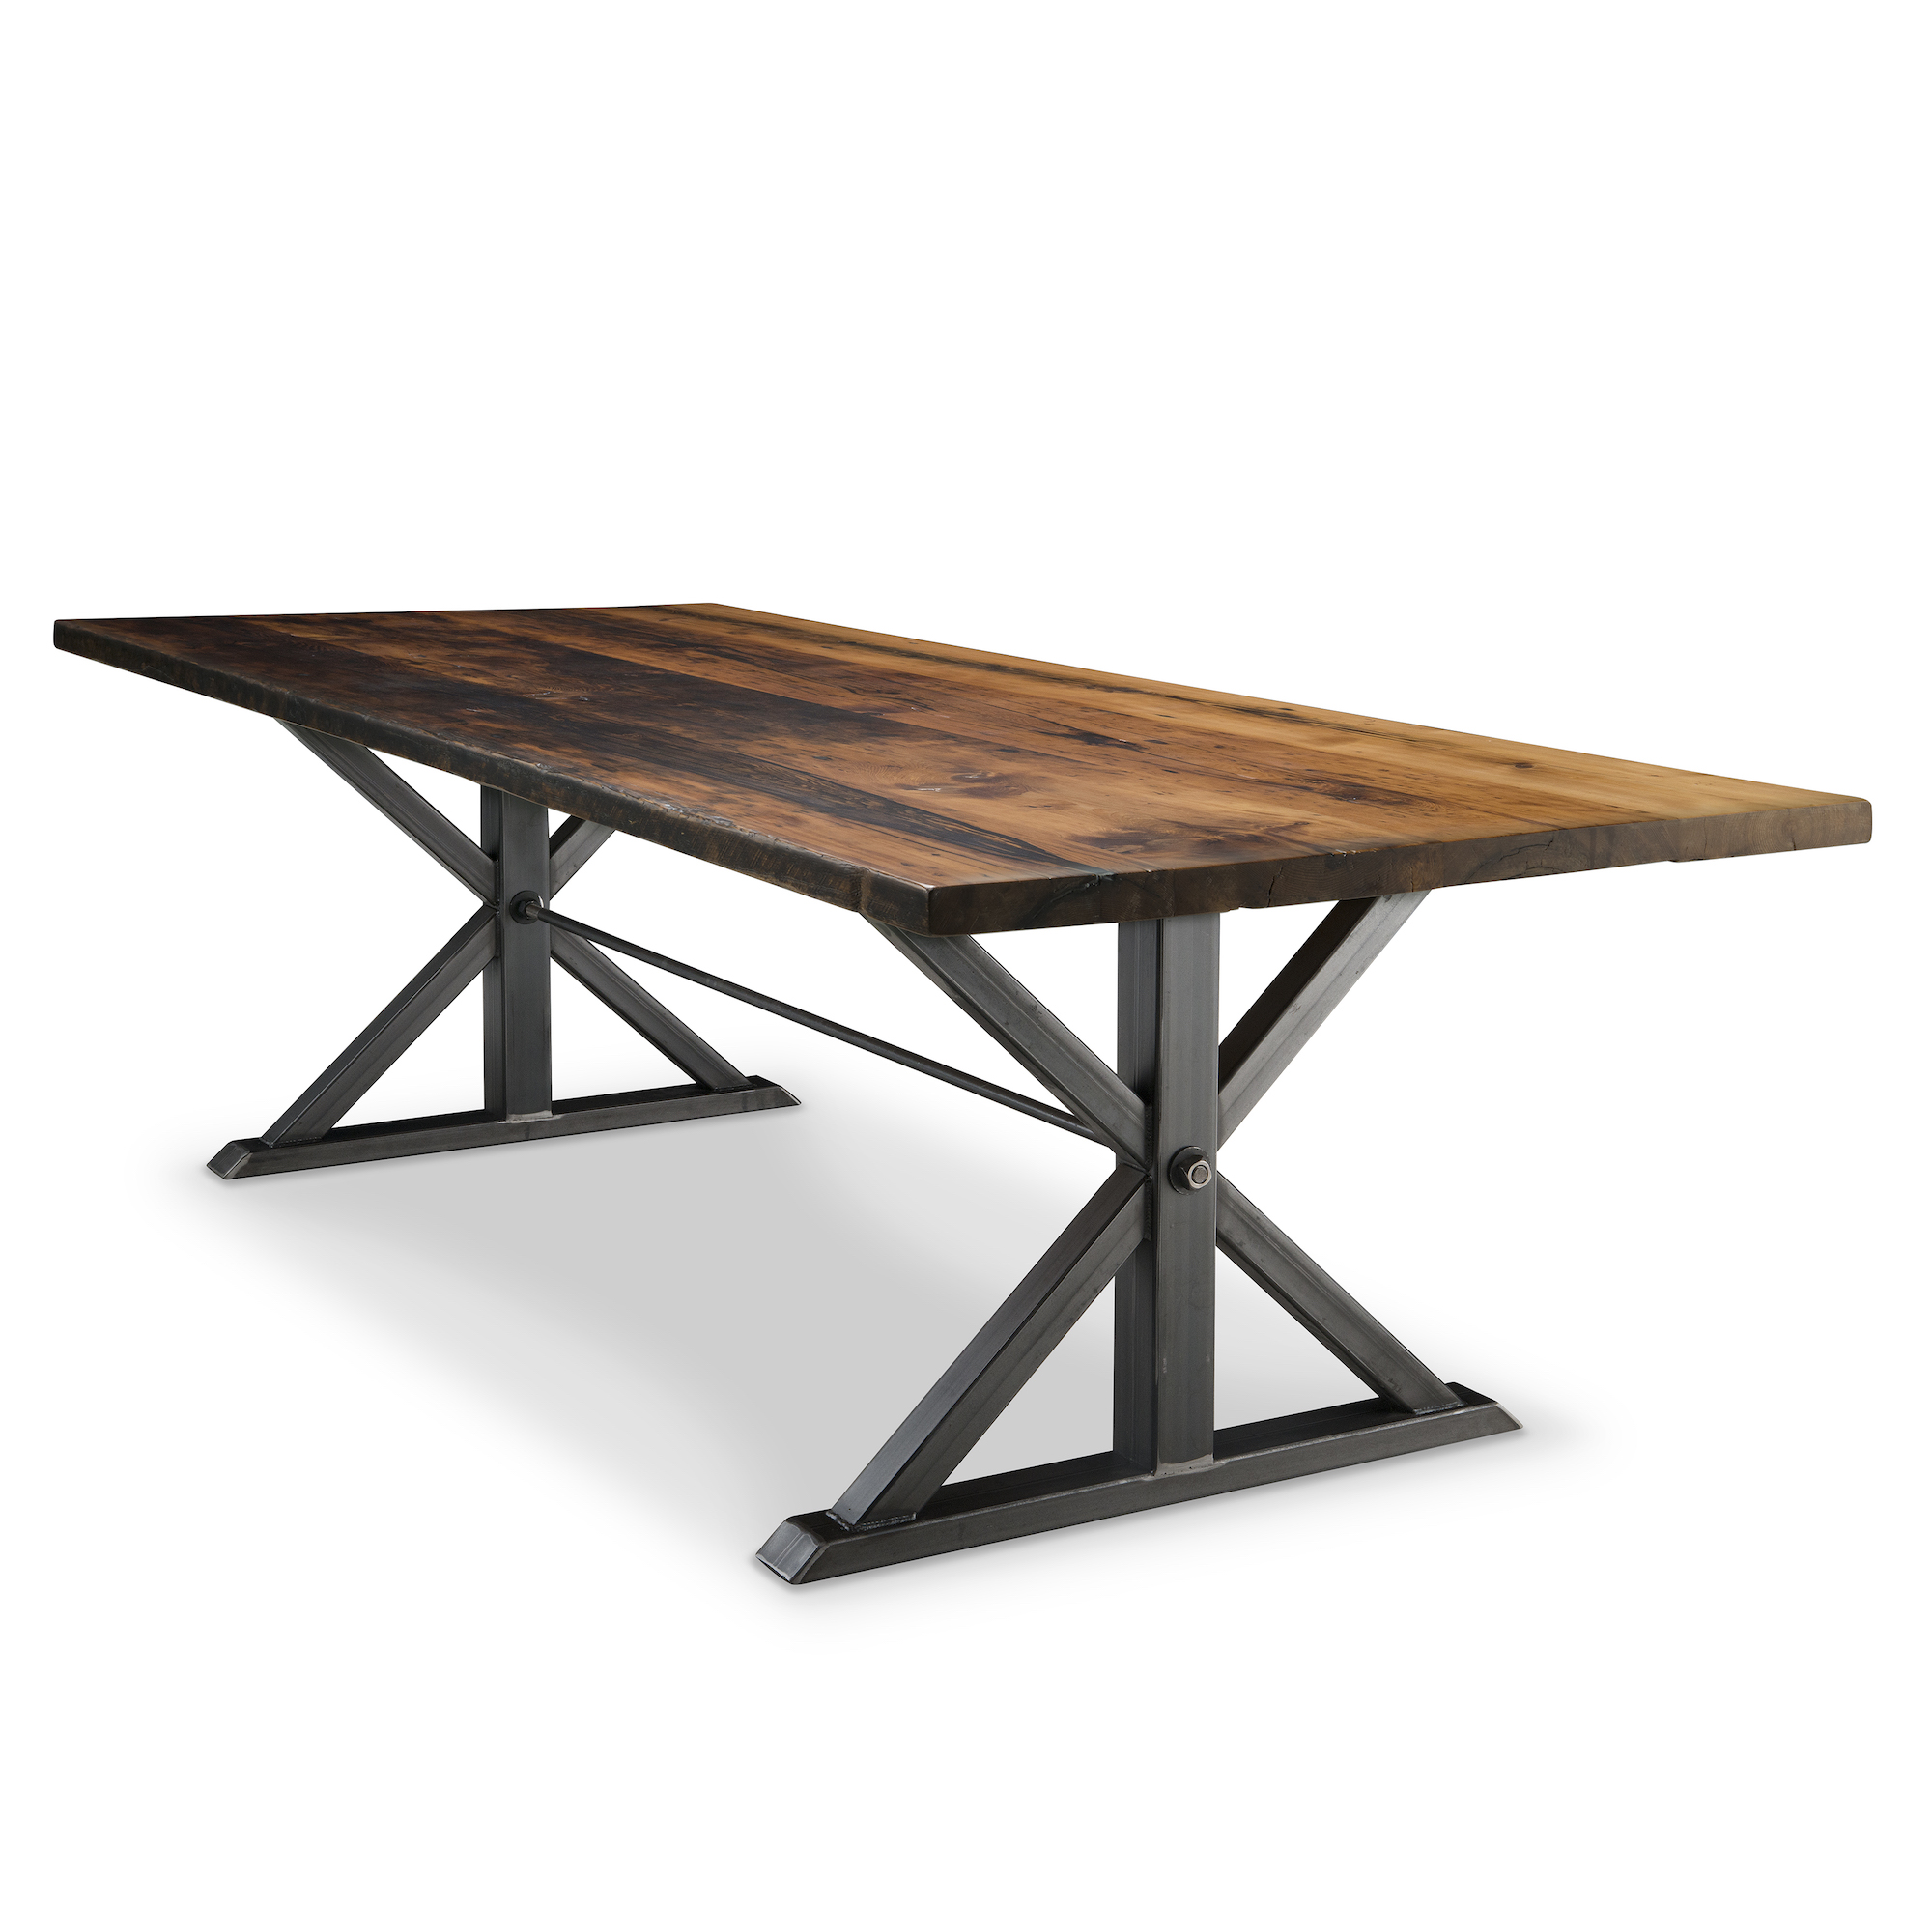 Jackson reclaimed wood dining table